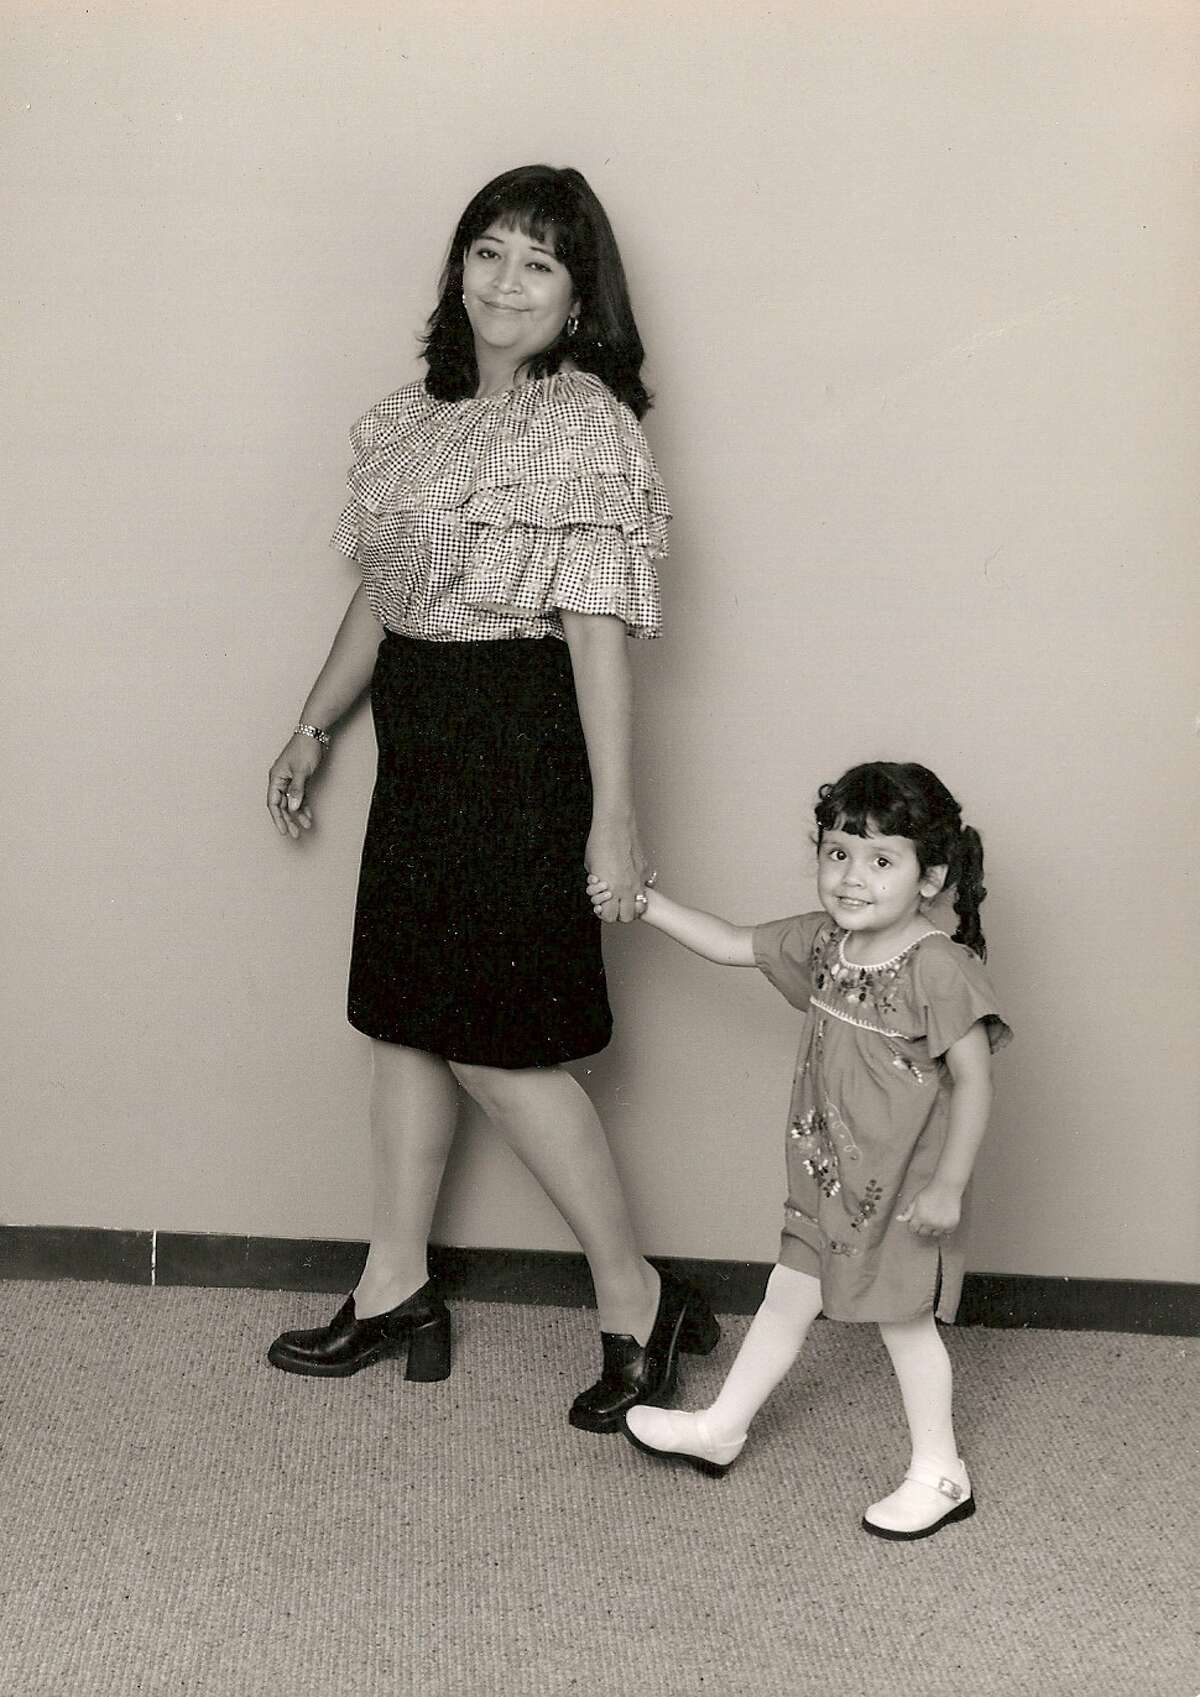 In 2000, Patty Constantin and her daughter Julianna Burris, 3, were photographed at the Institute of Texas Cultures for a mural that was included in an exhibit featuring a collection of shoes worn by famous Texans. I worked at the Institute at the time and they sort of walked through the office asking for volunteers, she recalls. She got a copy of the photo and, when the exhibit was dismantled, the four-foot long mural as well.